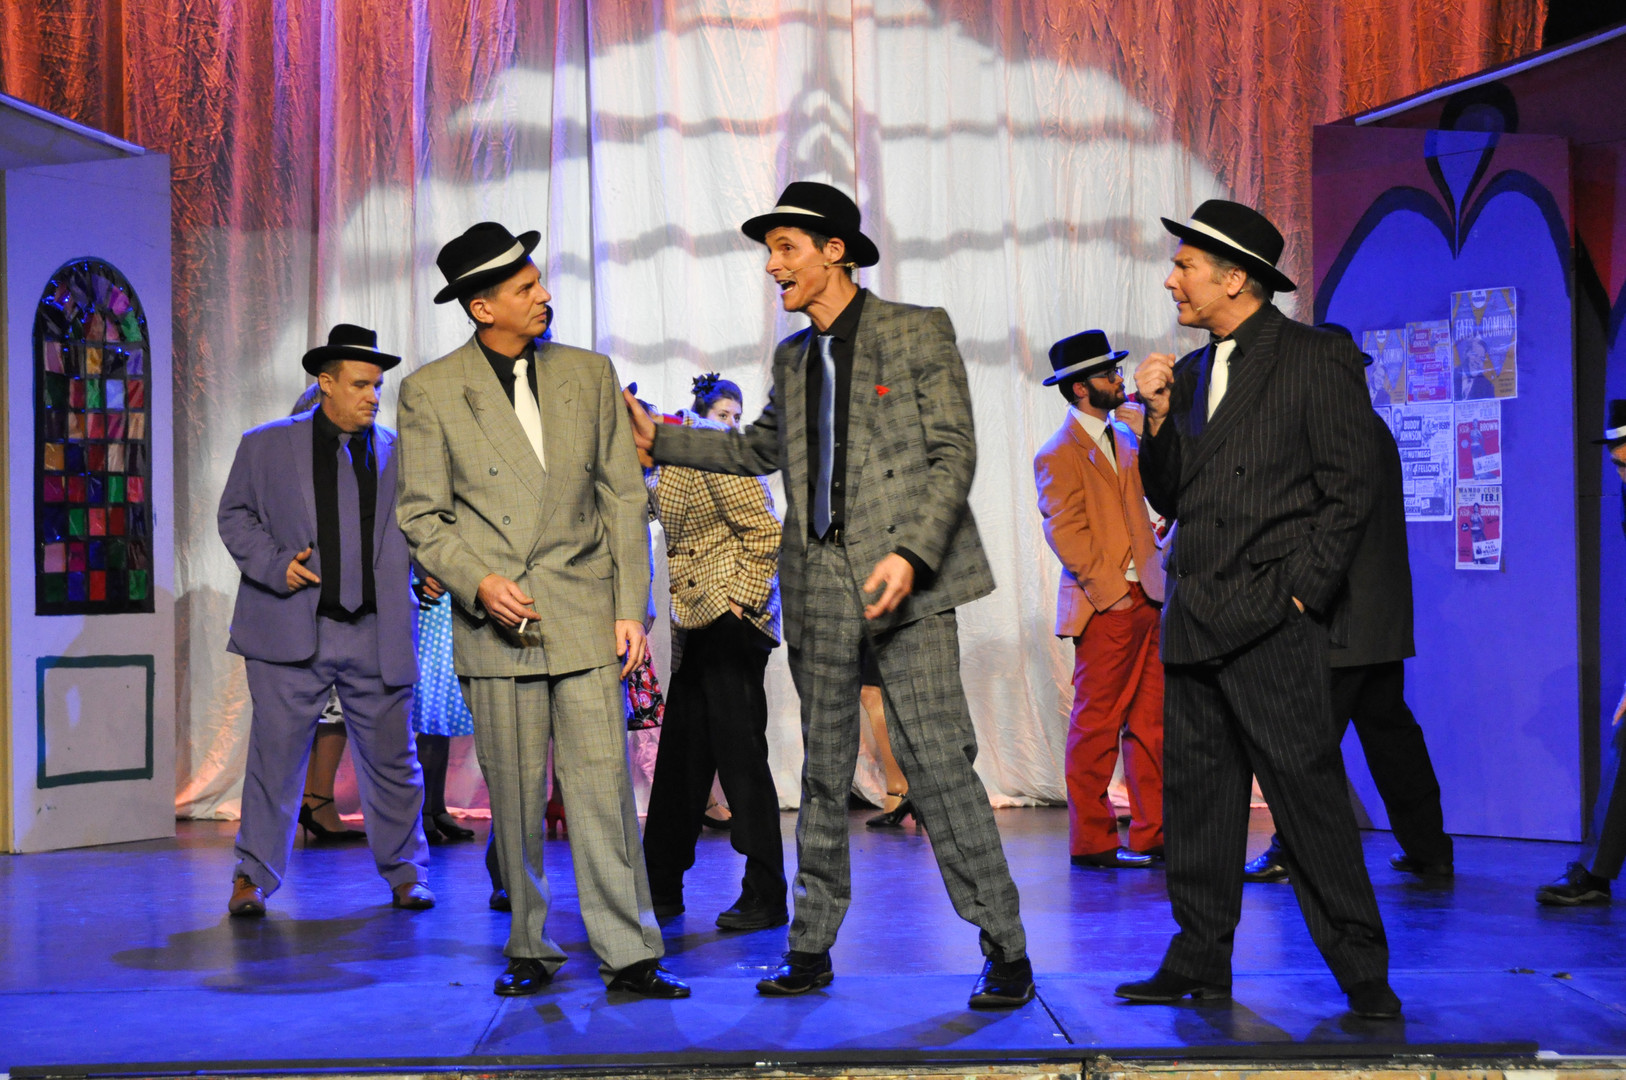 Guys & Dolls - Display 65 (1 of 65).jpg